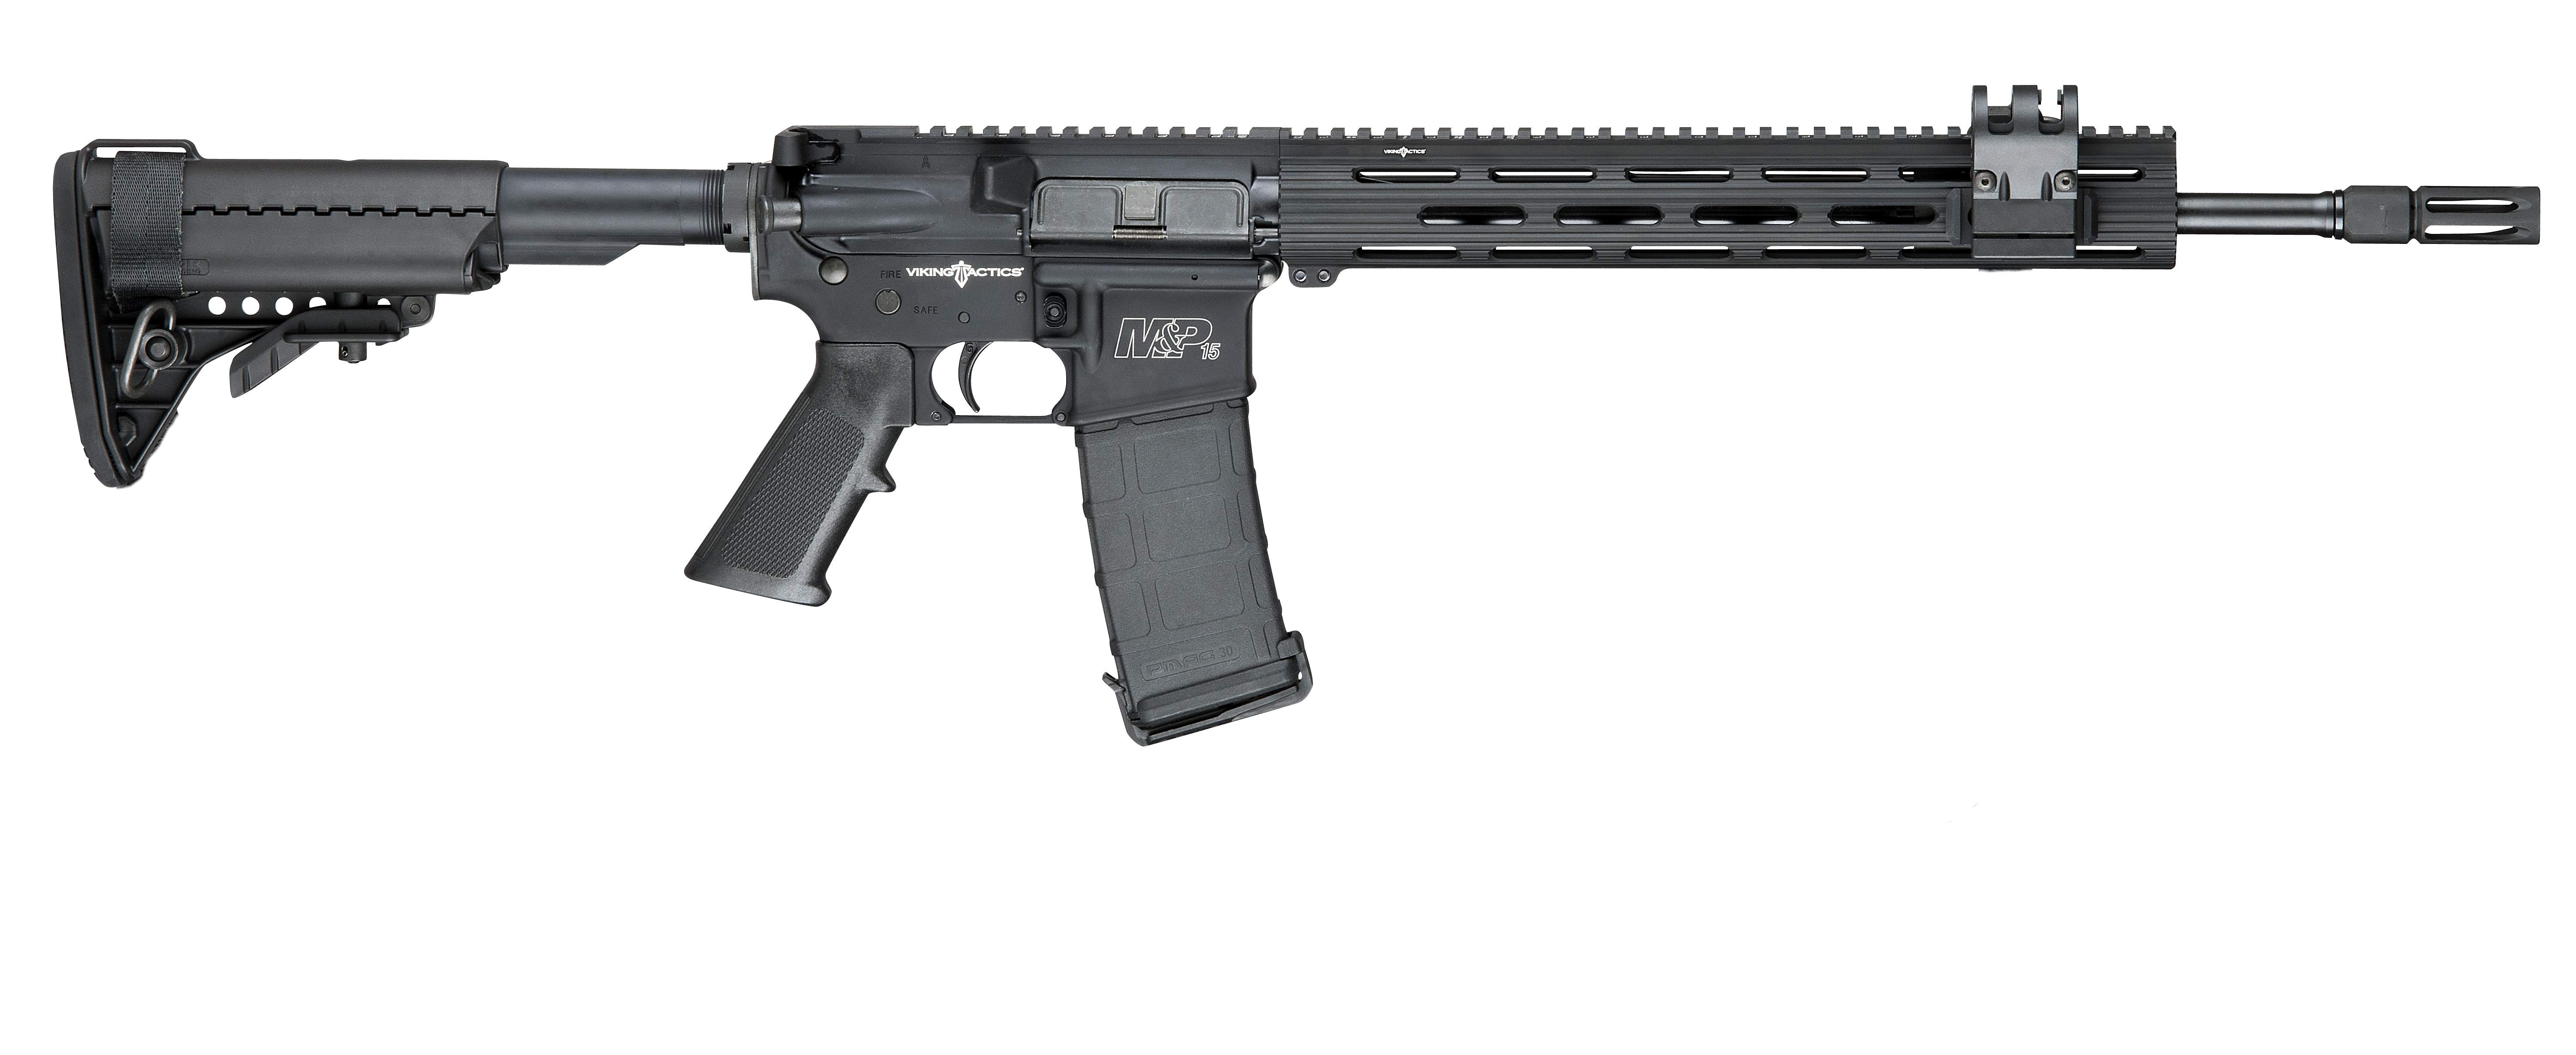 Smith & Wesson M&P 15 VTAC ll